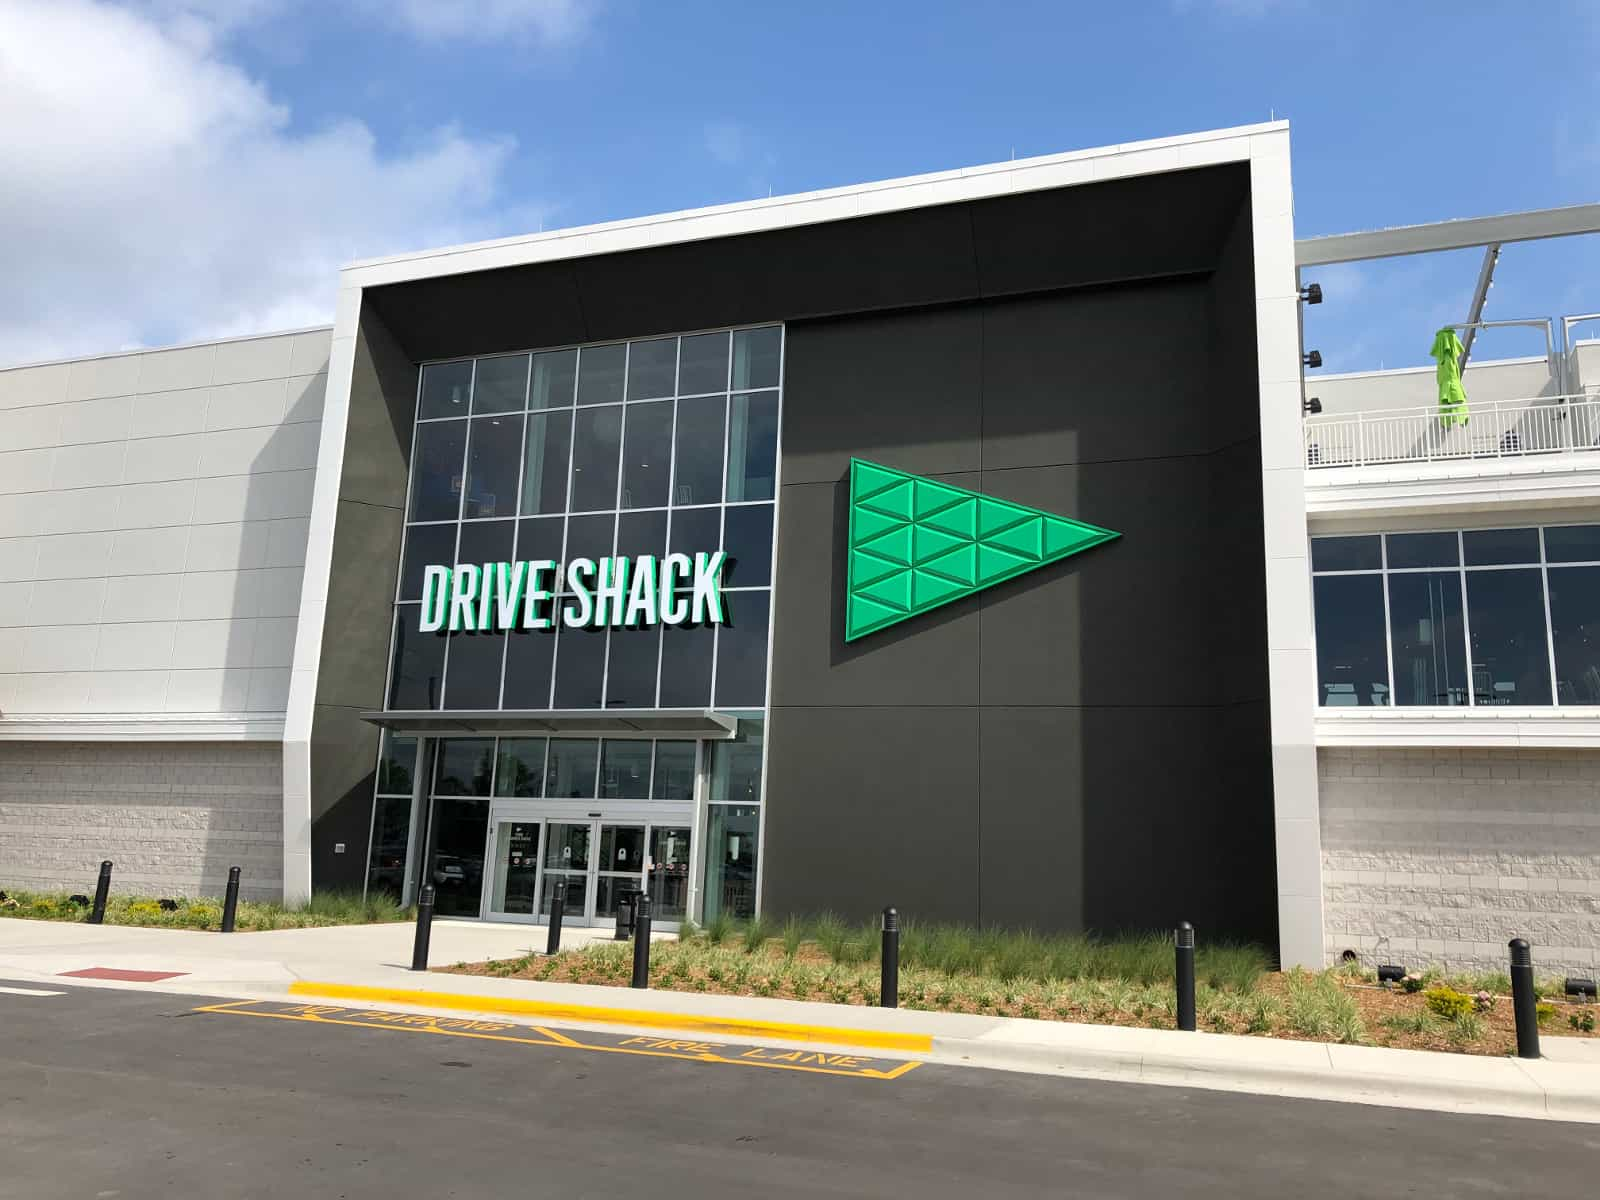 Real Driving Games >> Drive Shack, new golf entertainment complex and driving range, opens first location near Orlando ...